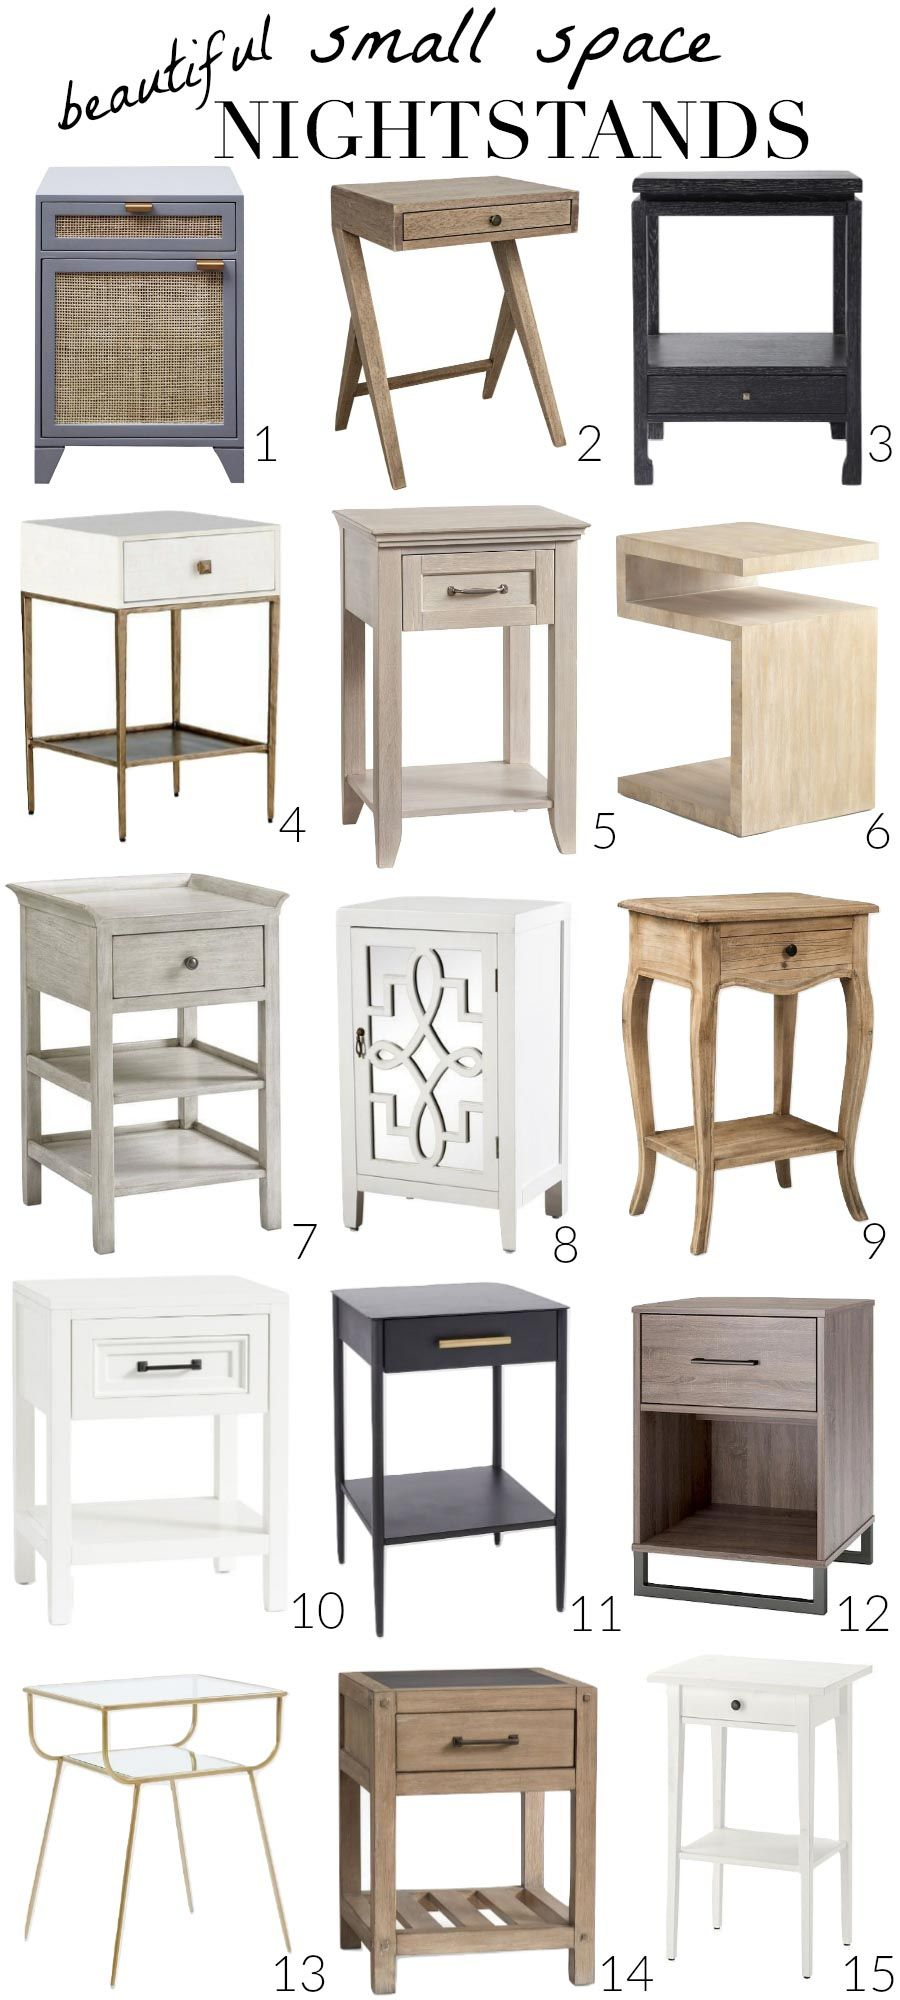 Favorite Narrow Nightstands for Small Space Bedrooms